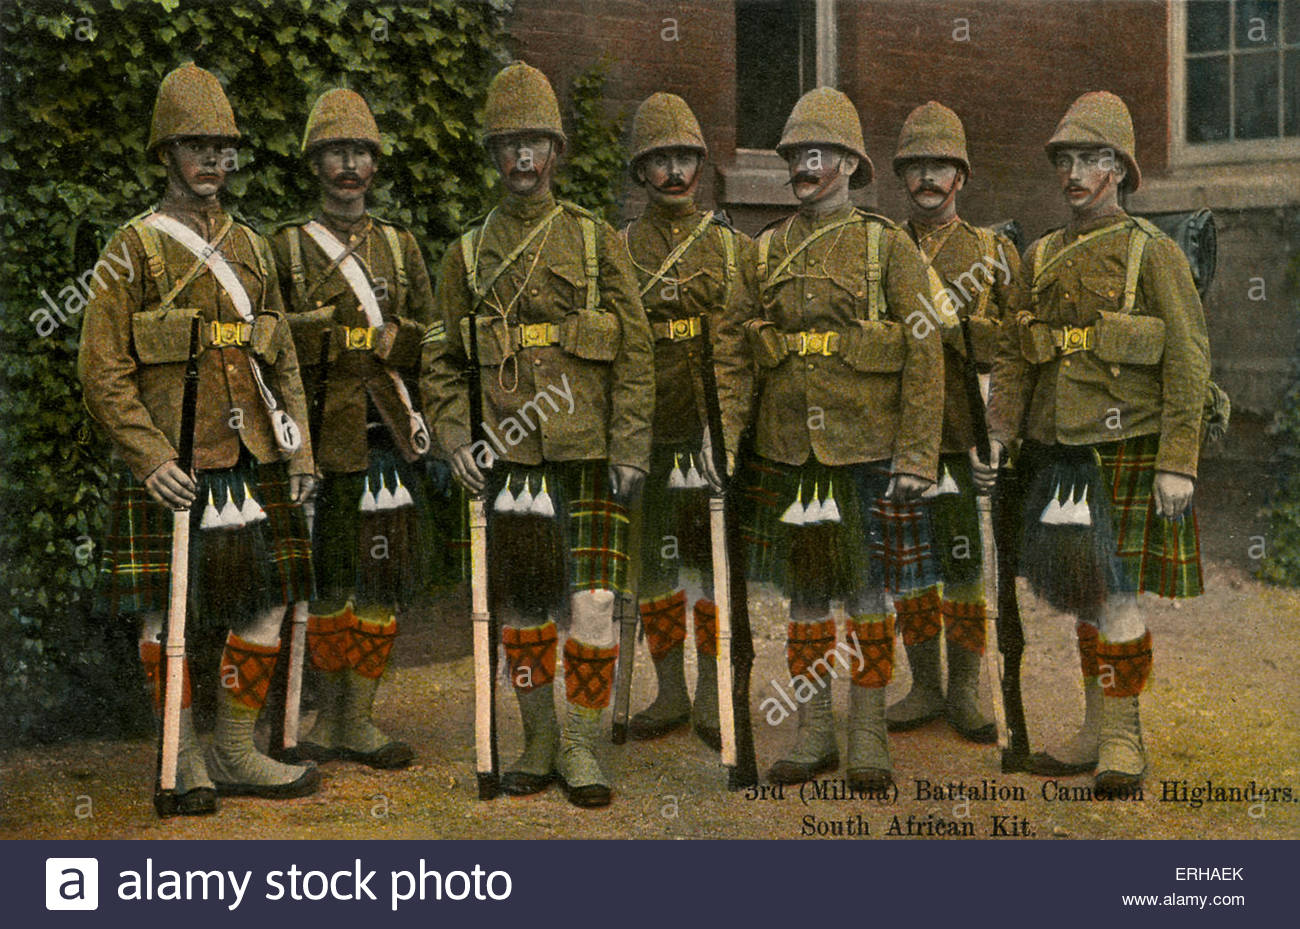 3rd_batallion_highlanders_in_south_african_kit_raised_from_a_militia_erhaek